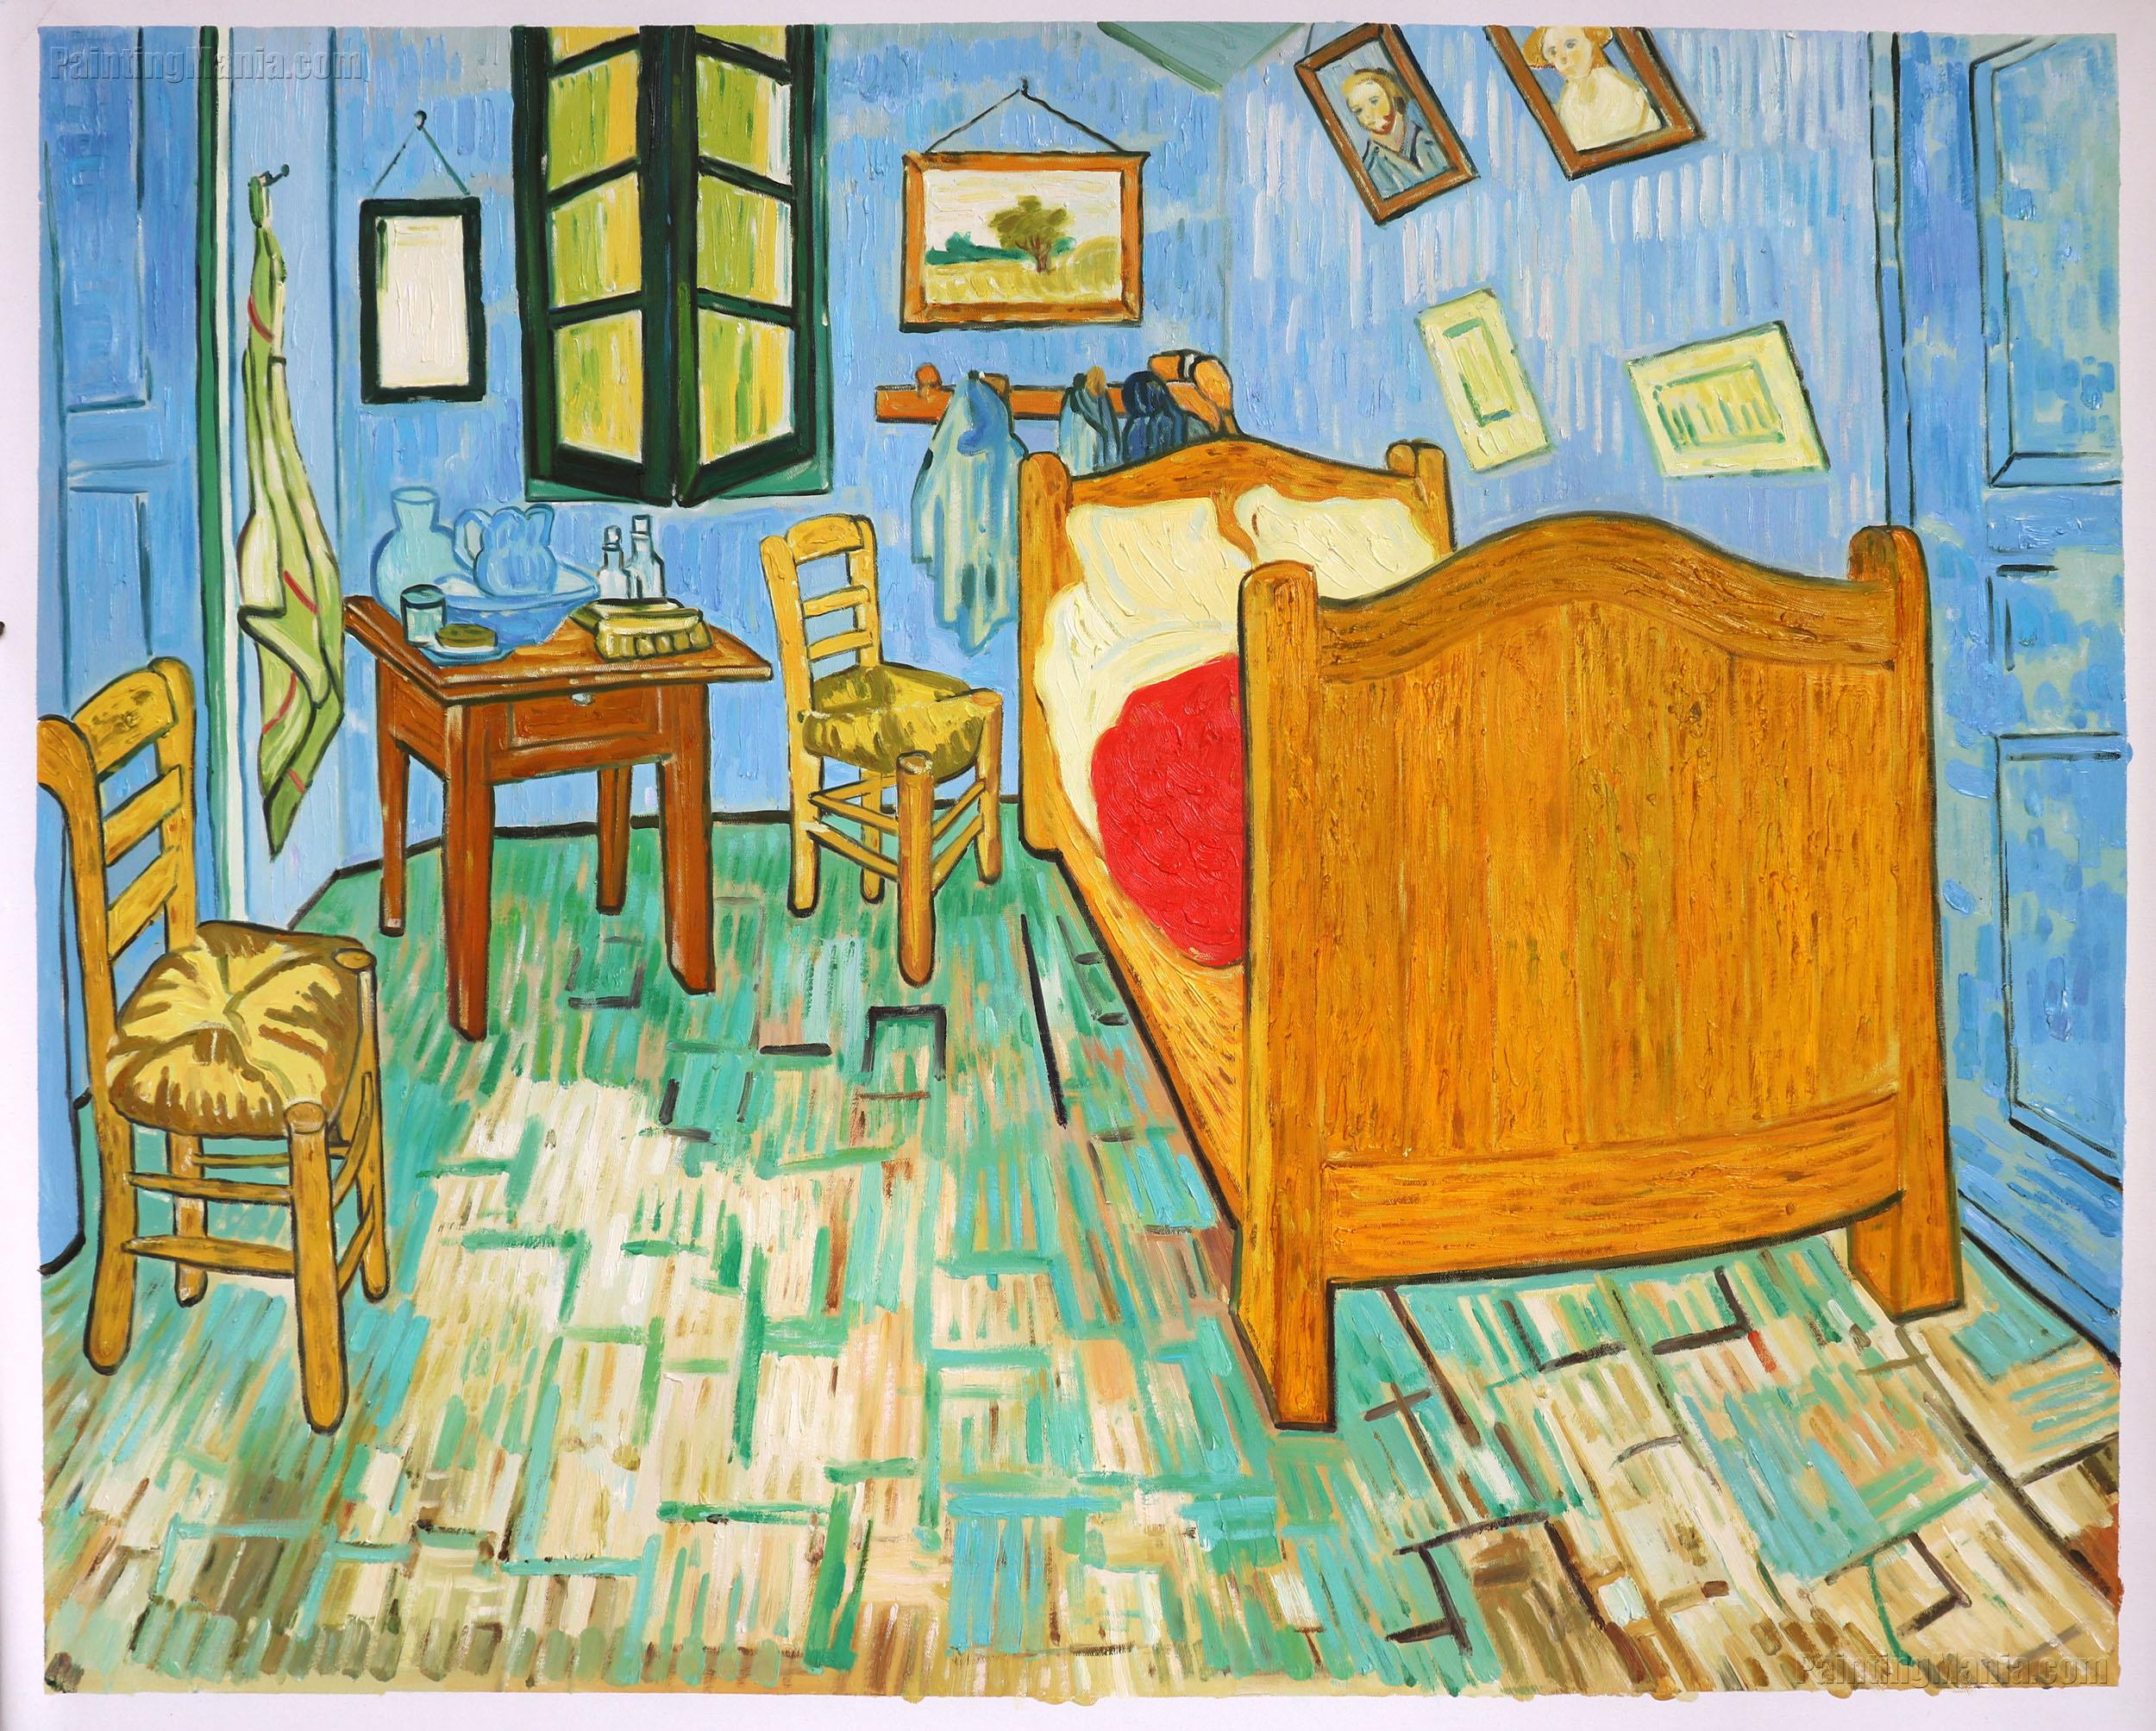 Vincent's Bedroom in Arles 1889 - Vincent van Gogh Paintings on the bedroom van gogh, the church at auvers, yellow house, sunday afternoon on the island of la grande jatte, water lilies, vincent van gogh, bedroom van gogh painting oil, room at arles van gogh, van gogh museum, starry night over the rhone, olive trees, bedroom vincent van gogh ppt, room in arles van gogh, wheat field with crows, sesame street bedroom van gogh, wheat fields, cafe terrace at night, bedroom in arles 1889, portrait of dr. gachet, the starry night, self-portraits by vincent van gogh, the potato eaters, church at arles van gogh, bedroom at arles by van gogh, bedroom in arles high resolution,